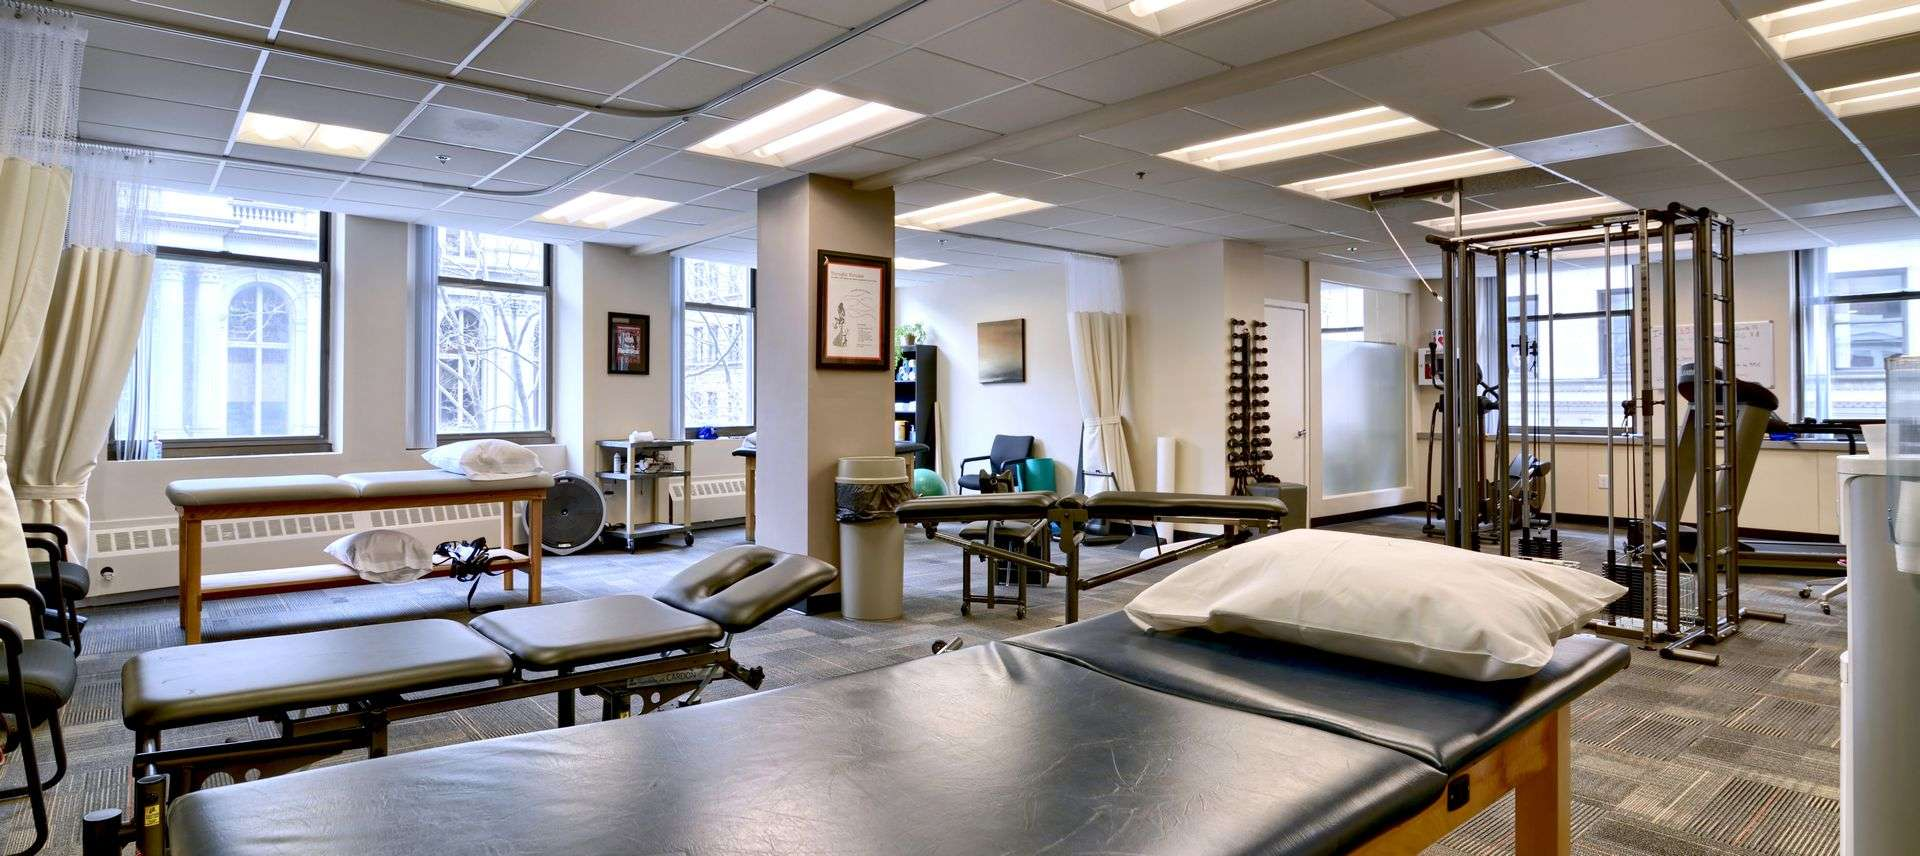 Interior of our physical therapy and sports medicine clinic in Boston, Massachusetts.